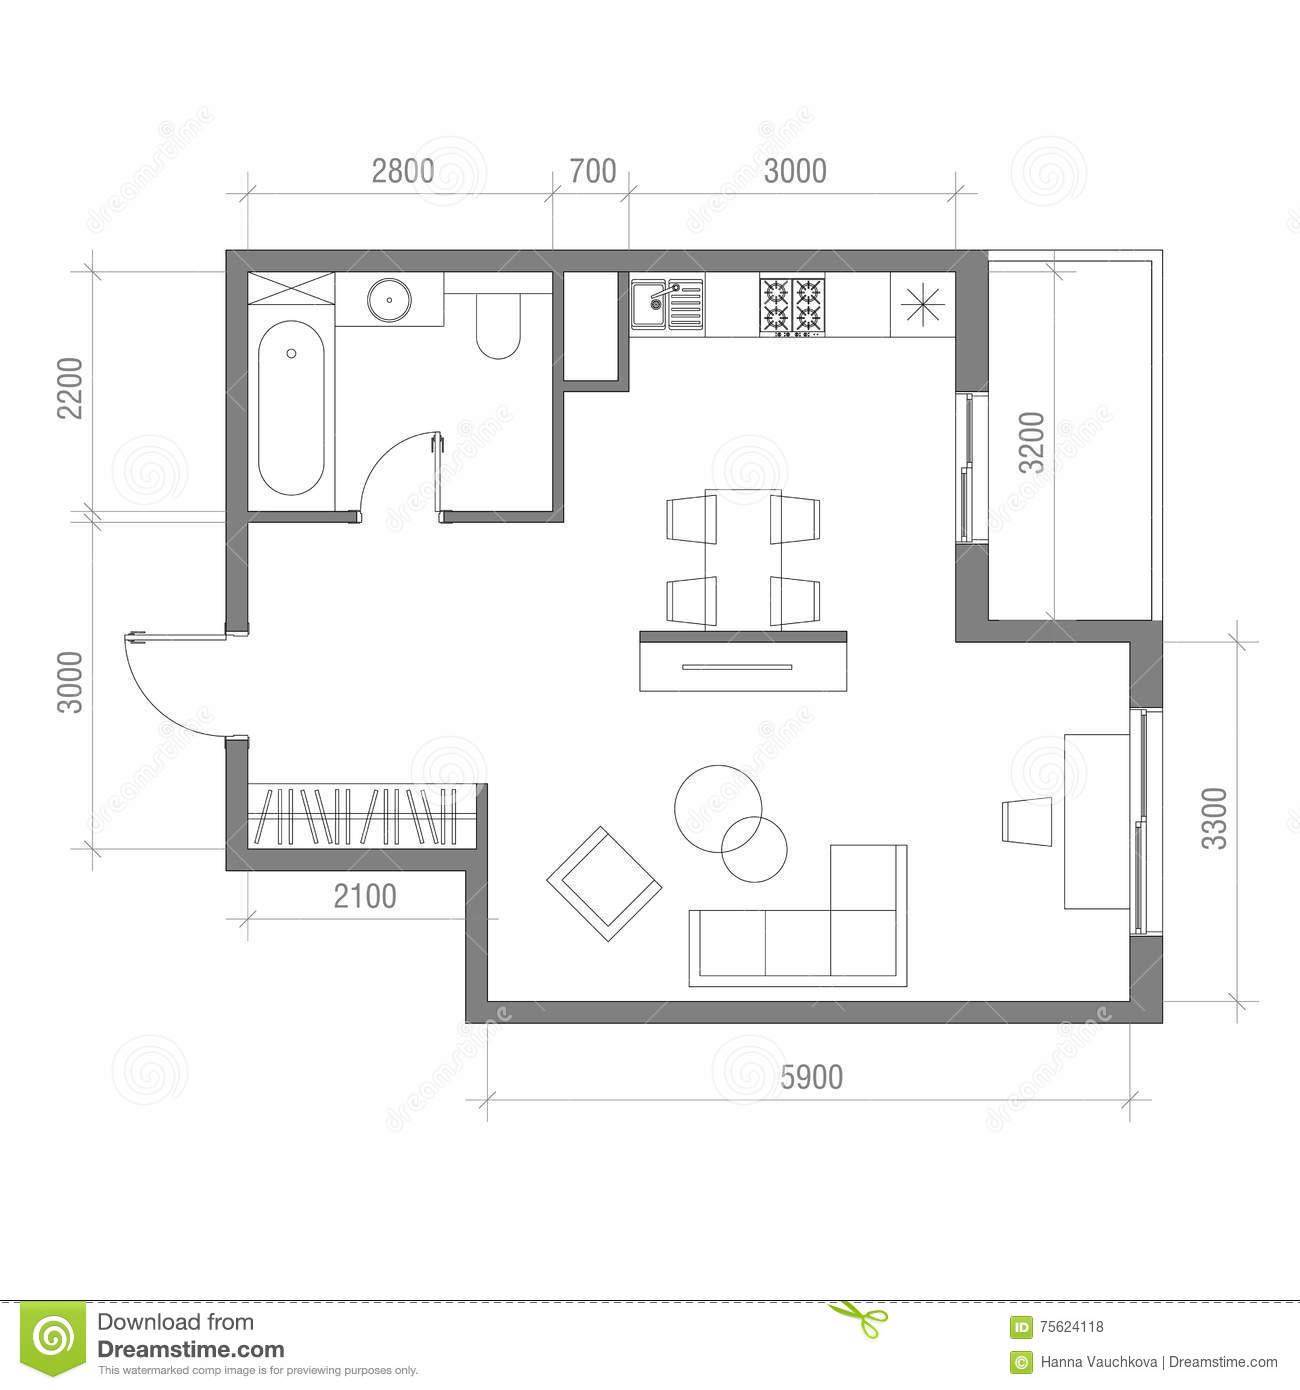 Architectural Floor Plan With Dimensions Studio Apartment Vector Illustration Top View